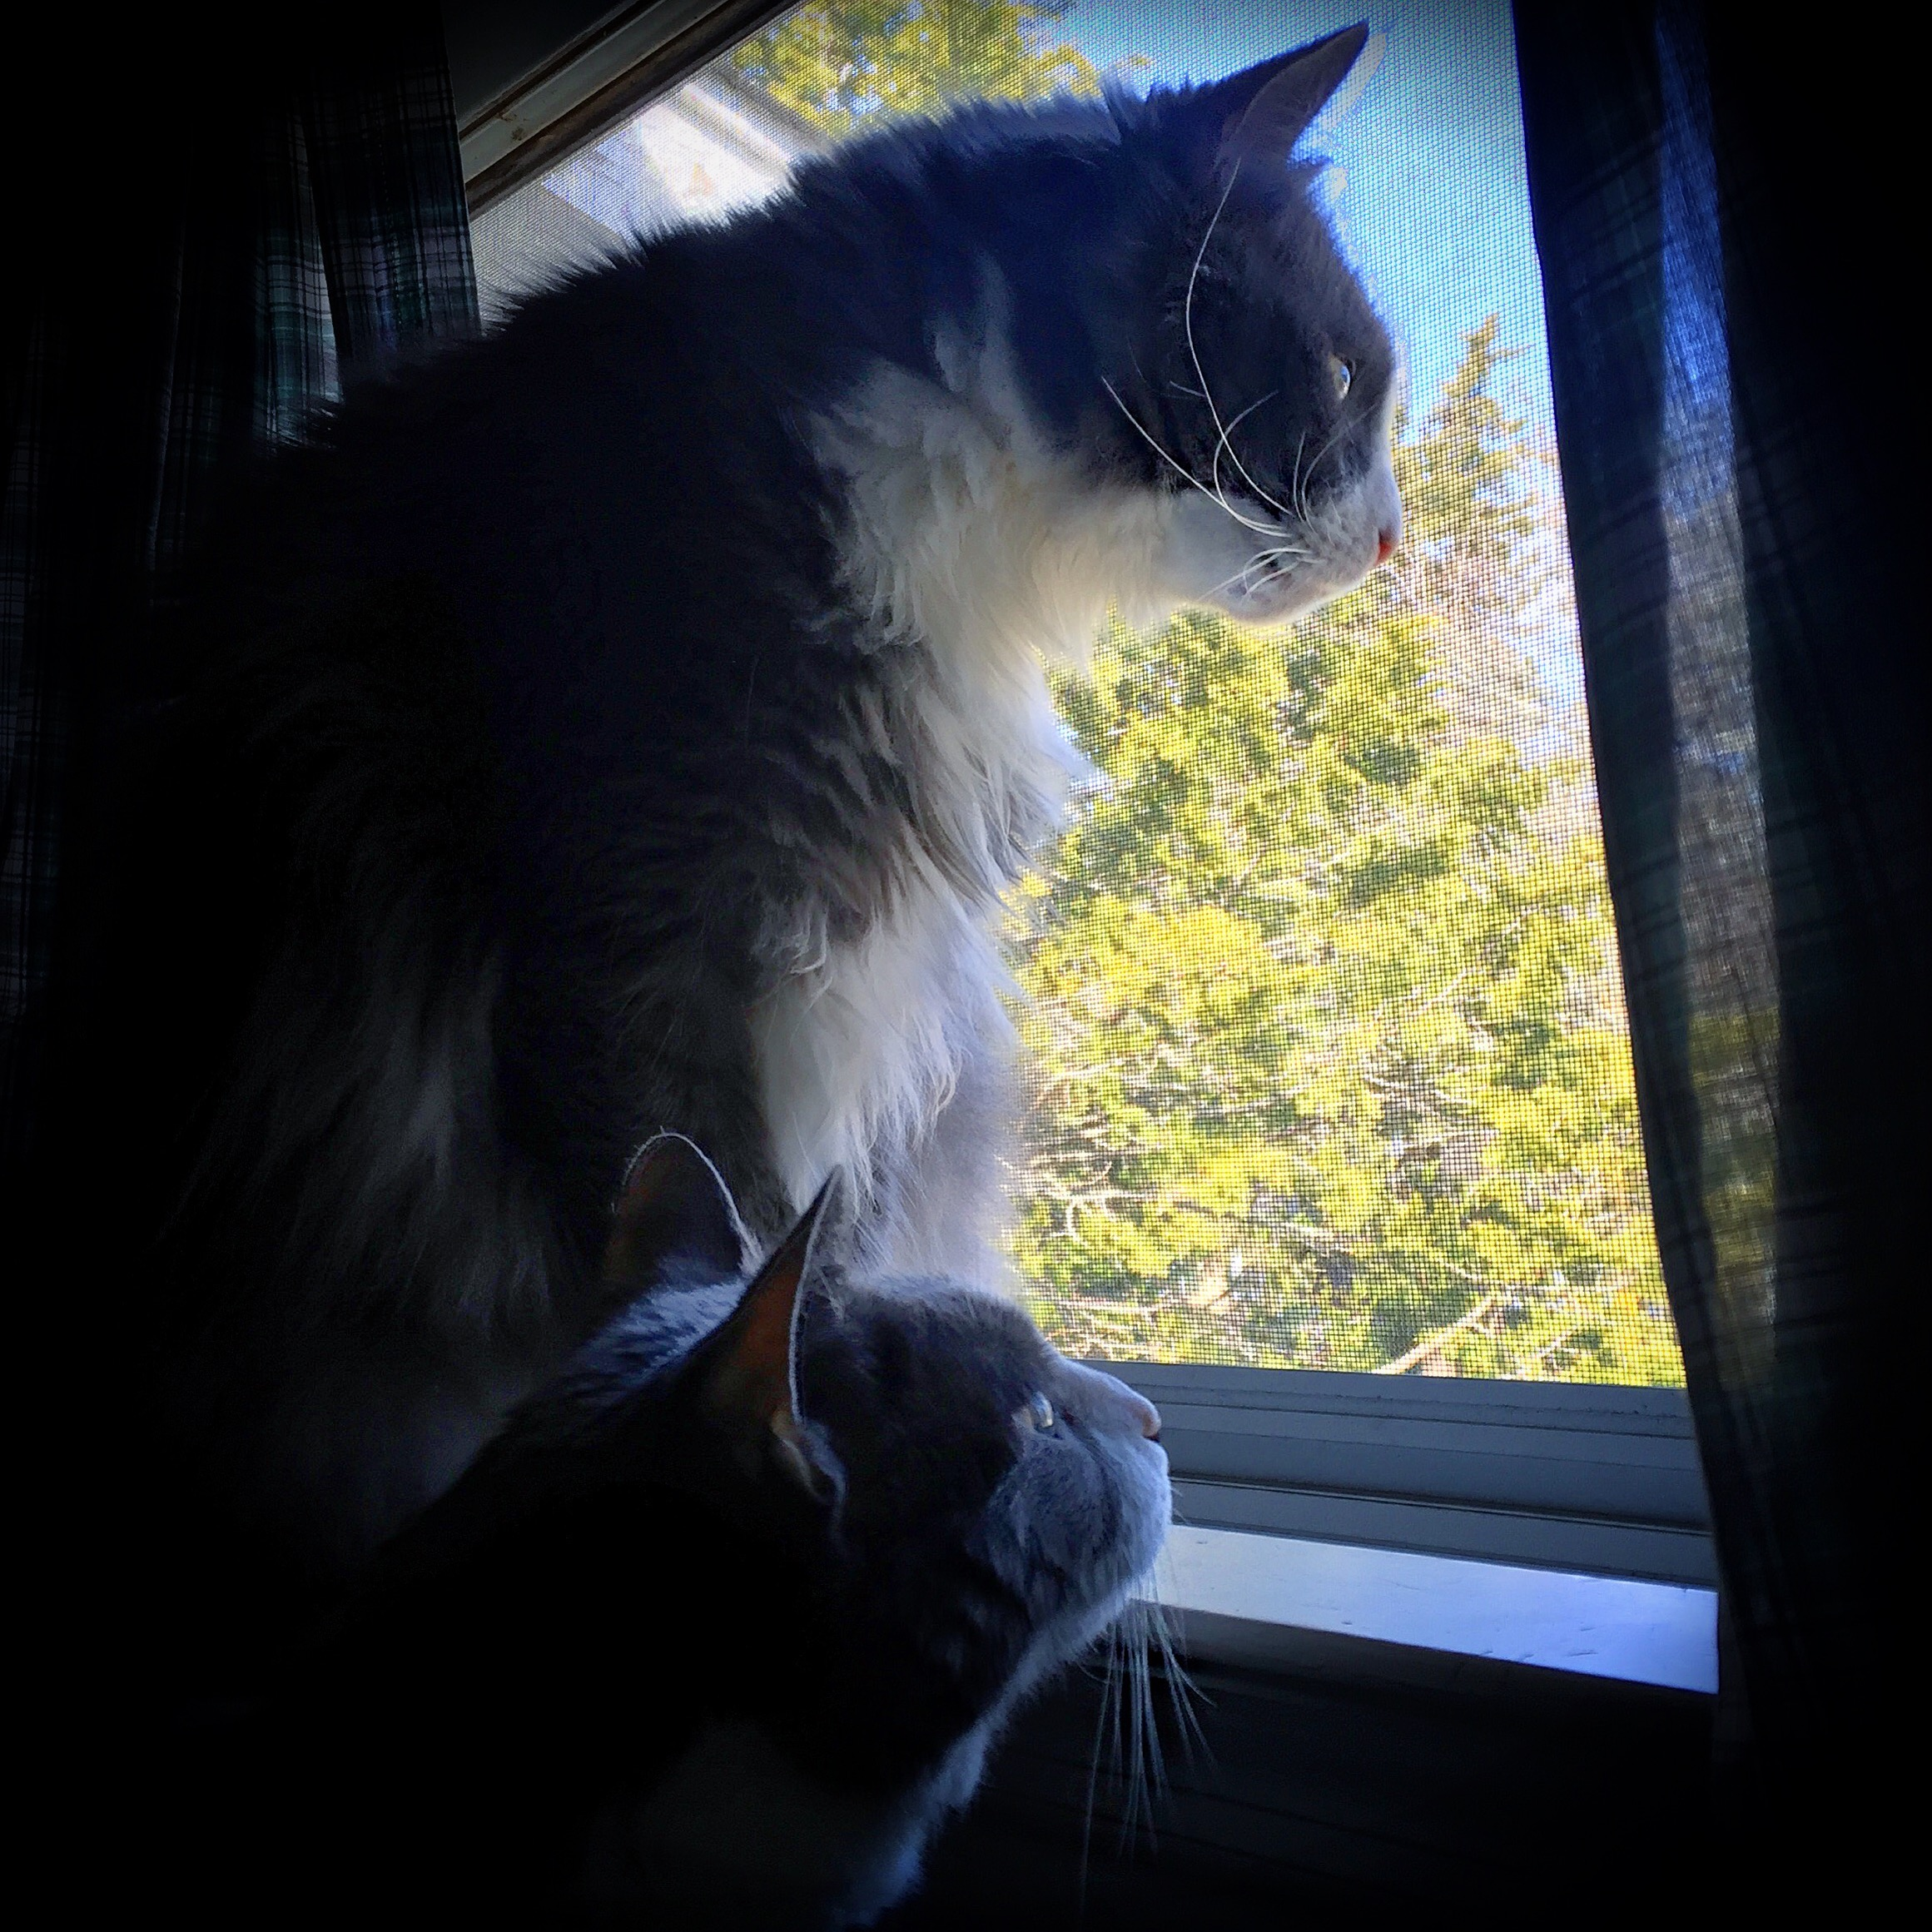 Reliving outdoor adventures from the safety of the window